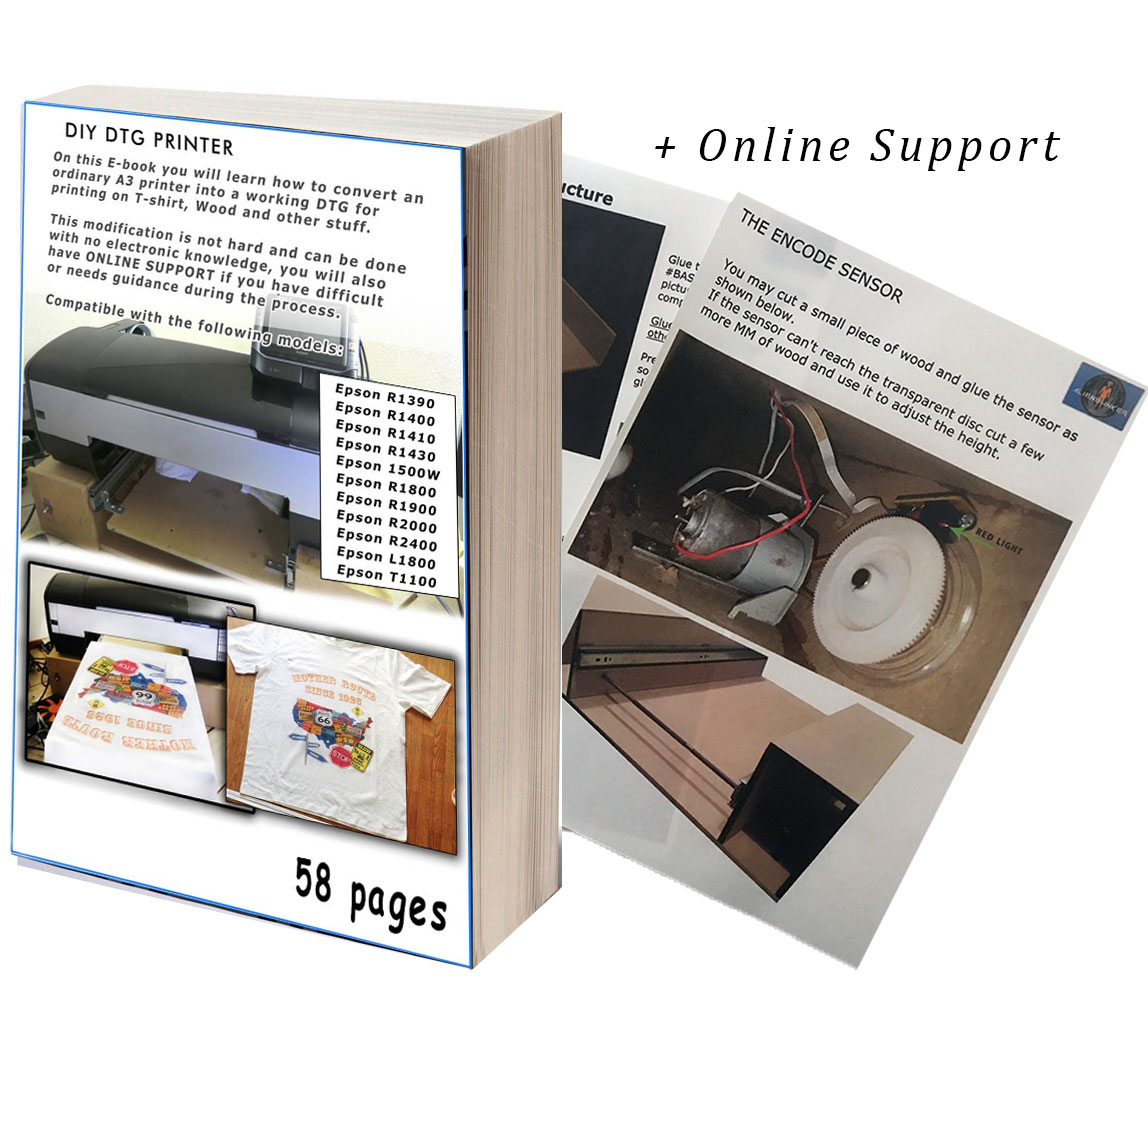 DIY DTG Plans Step by Step T-shirt Printer Epson 1400, 1430, 1390, P600,  1500w, R1800, R1900, R3880 Download PDF